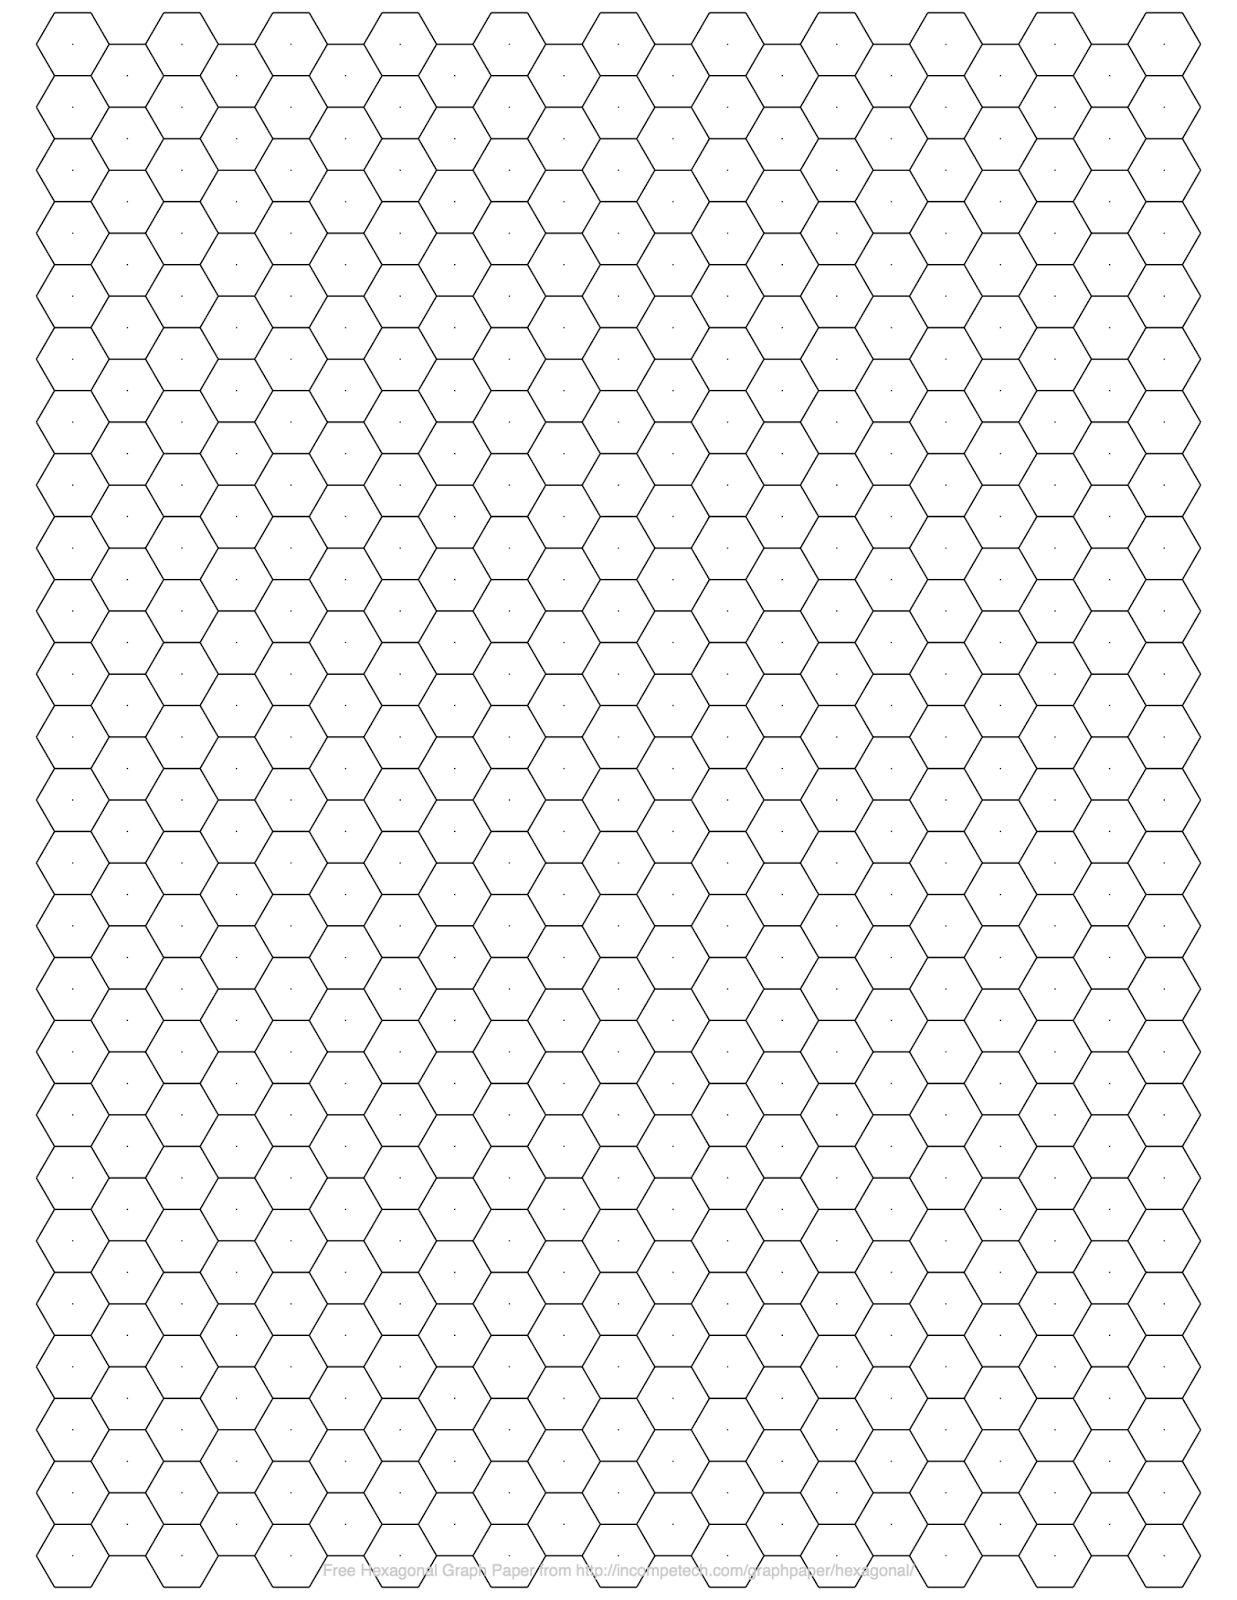 Superb image for printable hex paper